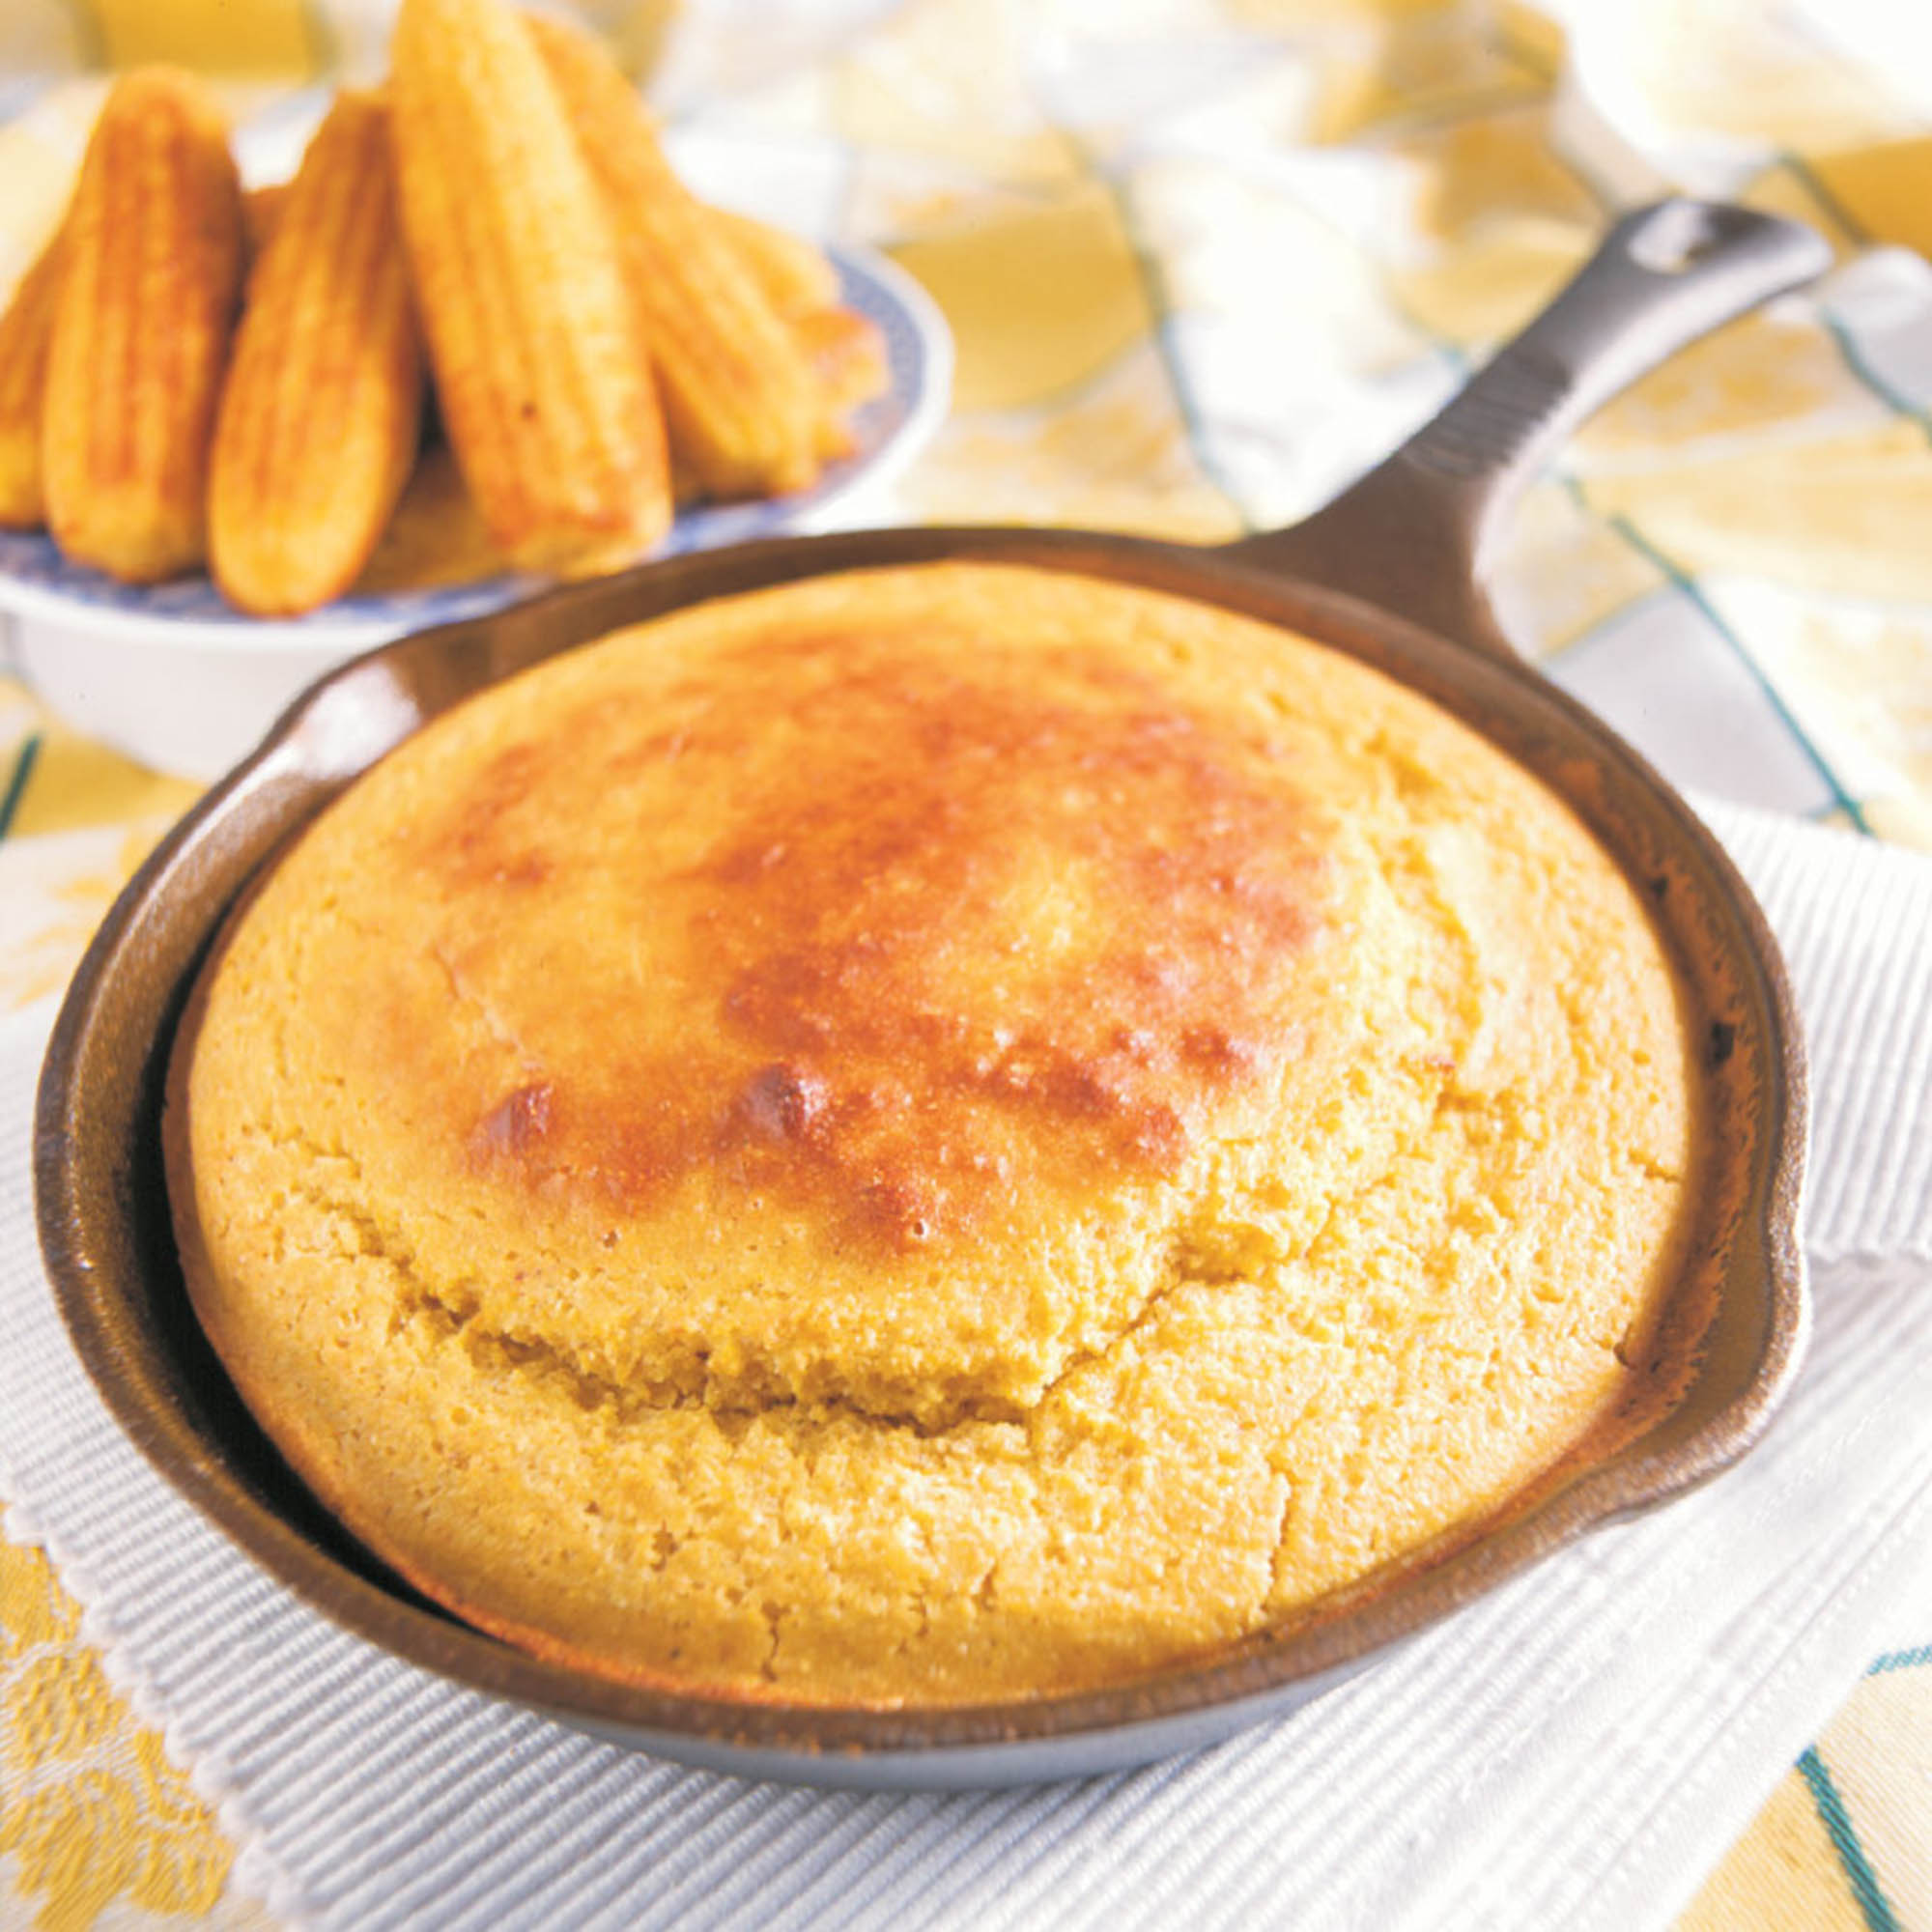 Southern-Style Cornbread Recipe - Cook's Illustrated